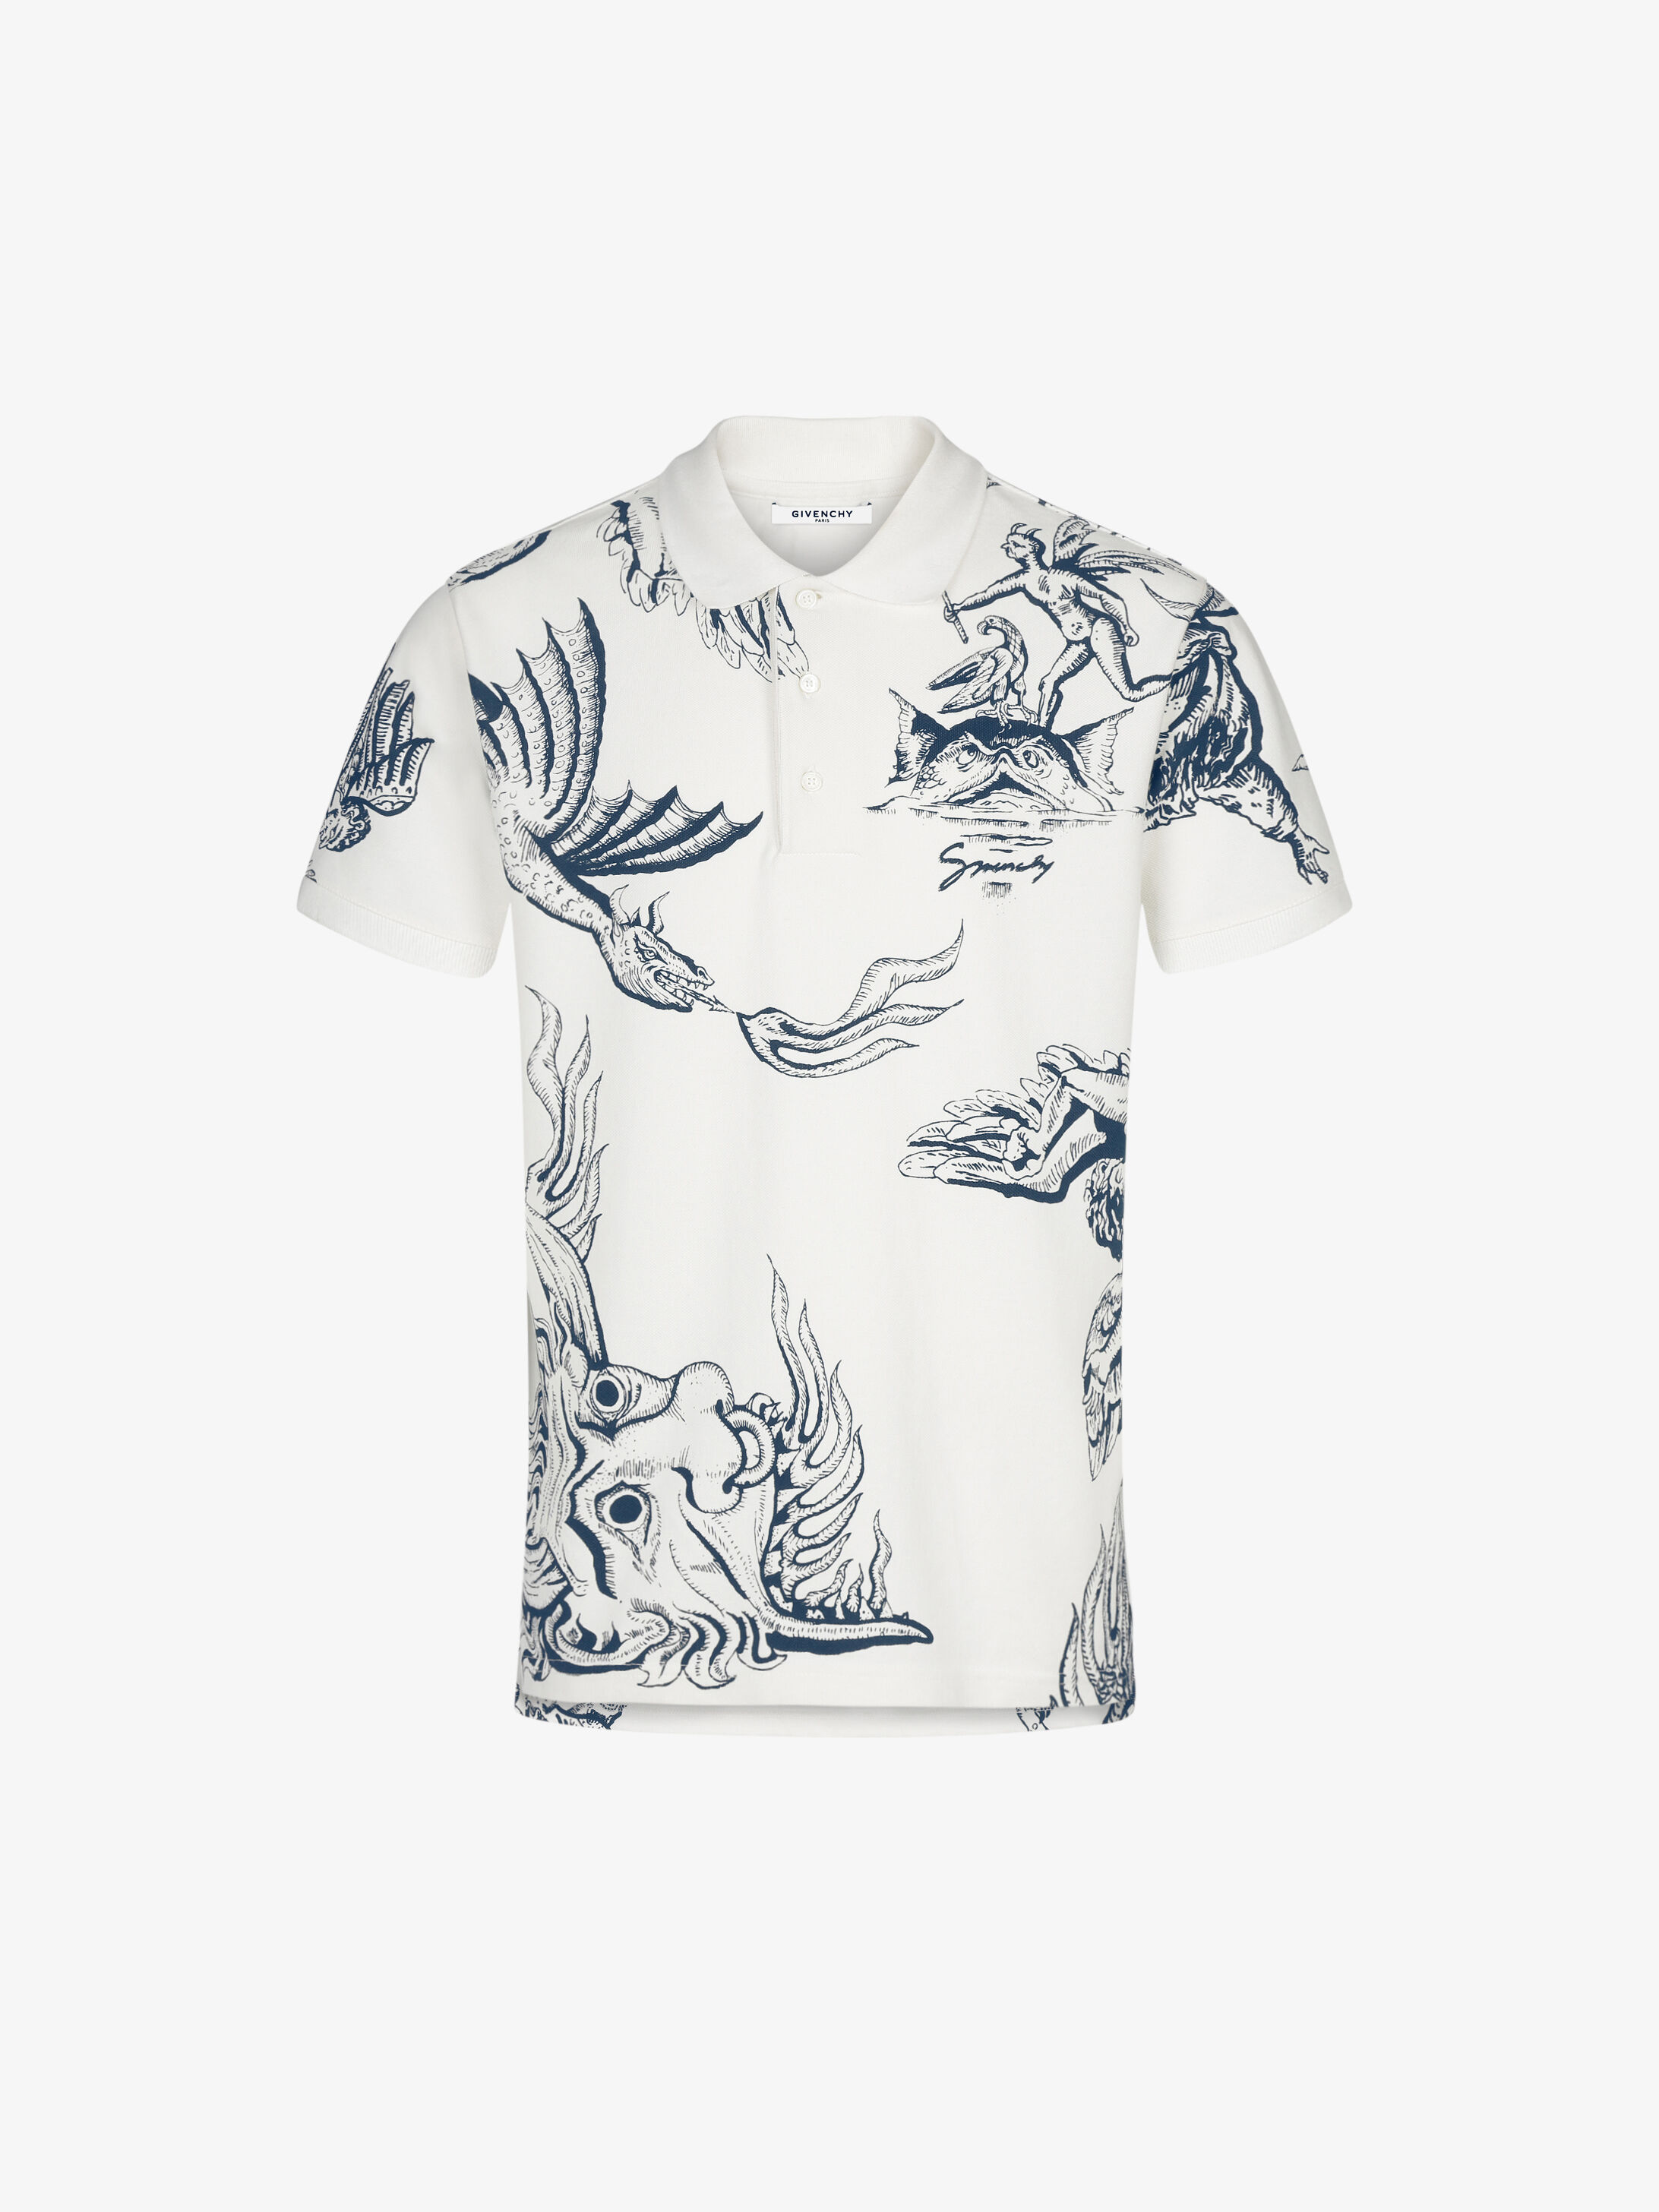 4b877caa3c03 Men's T-Shirts collection by Givenchy. | GIVENCHY Paris